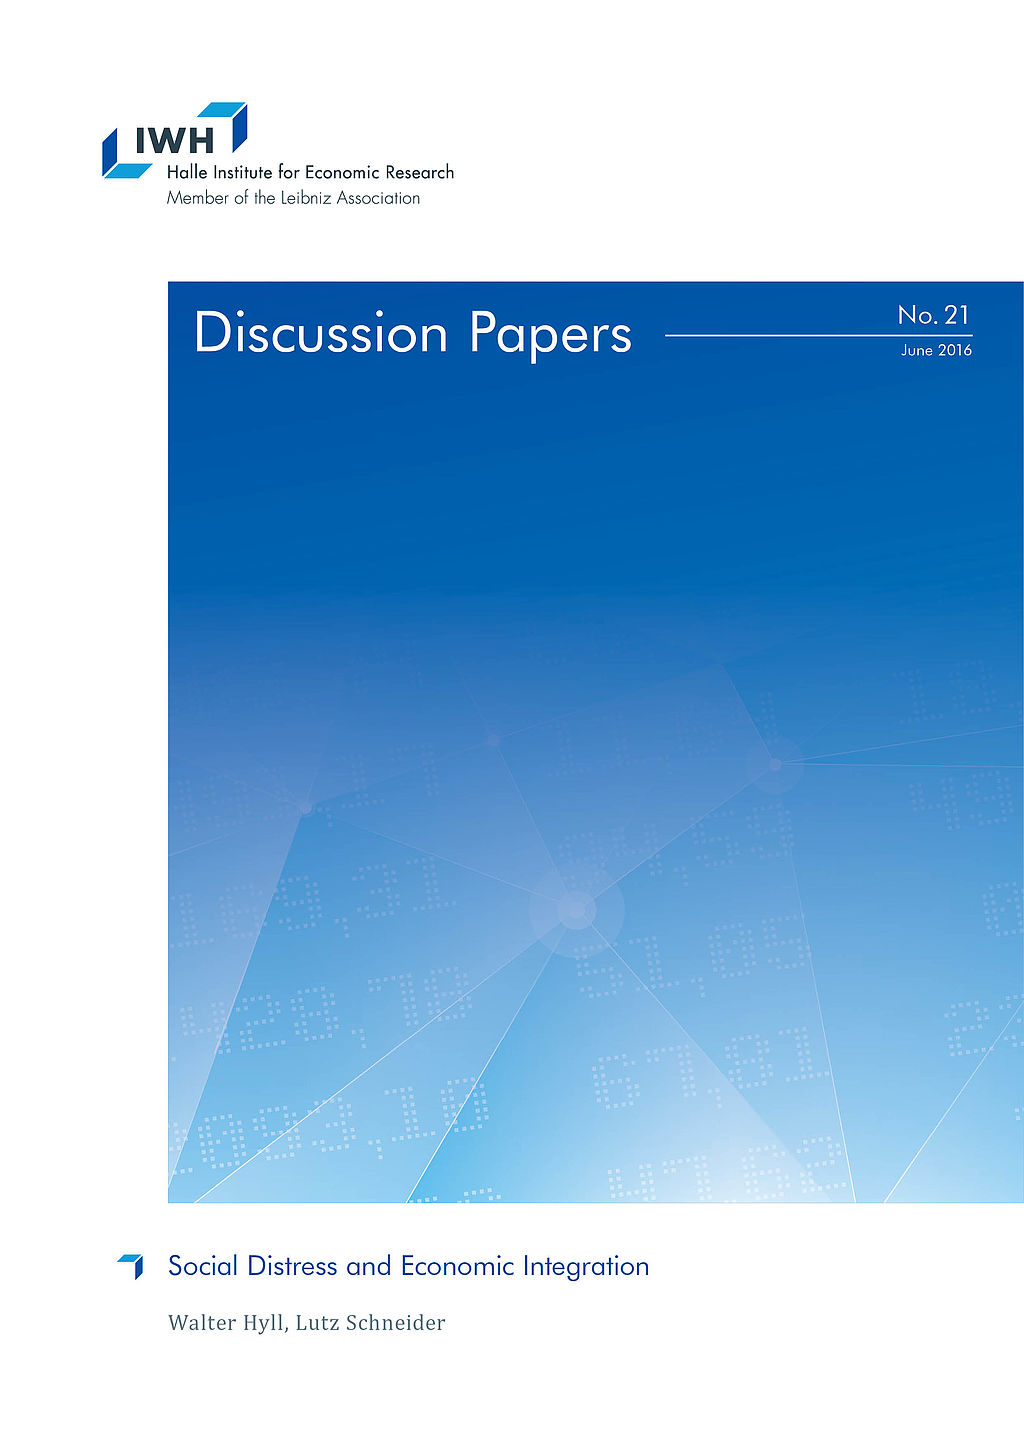 Cover_IWH-Discussion-Papers_2016.jpg